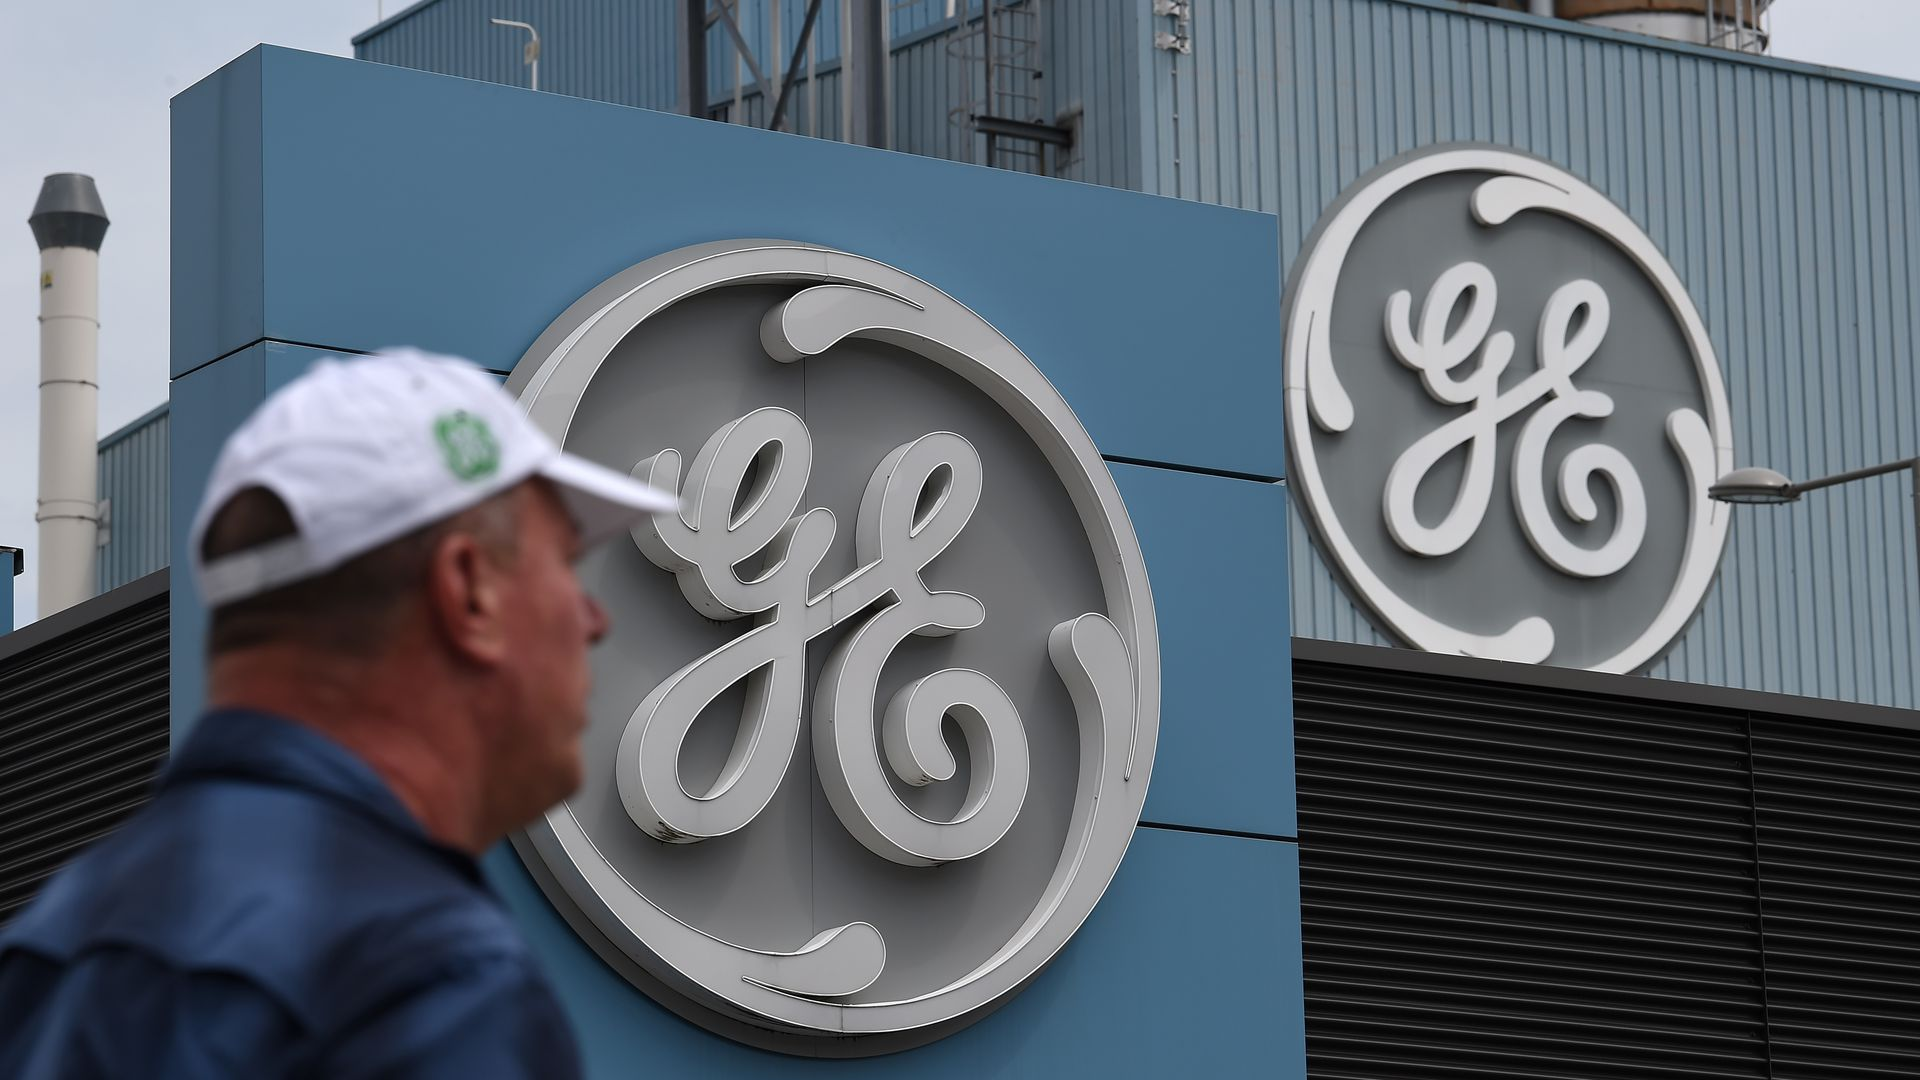 In this image, a man wearing a baseball cap walks in front of a building with a giant General Electric logo.